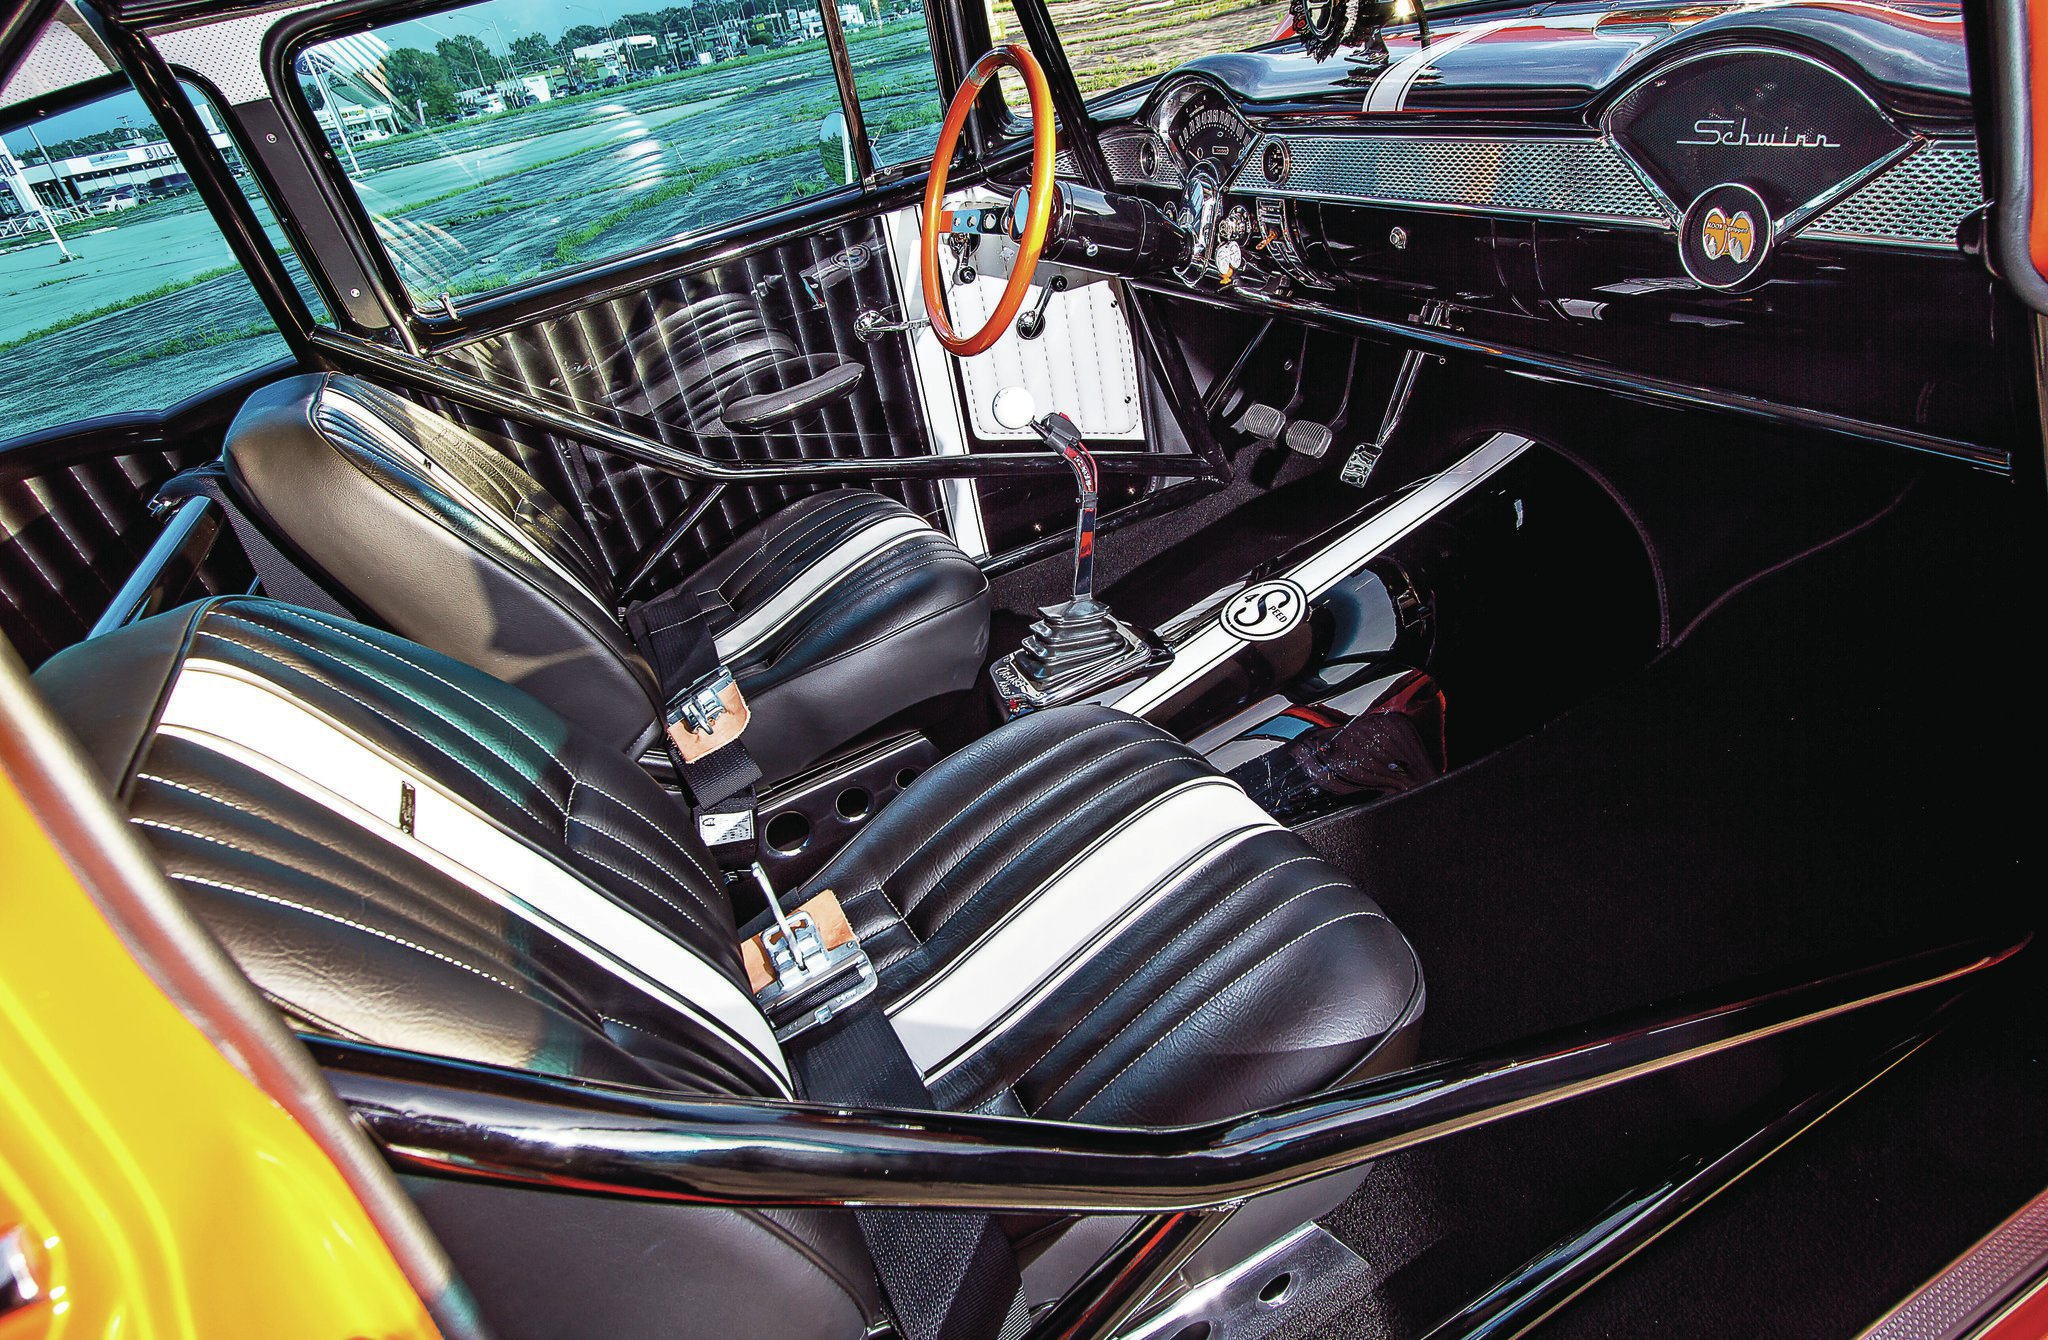 The door panels are the work of owner Dave VerSchave, who painted the aluminum panels to mimic actual upholstery. Schober's Custom Hot Rod Interiors aptly stitched the upholstery. Stick is a vintage Hurst shifter.